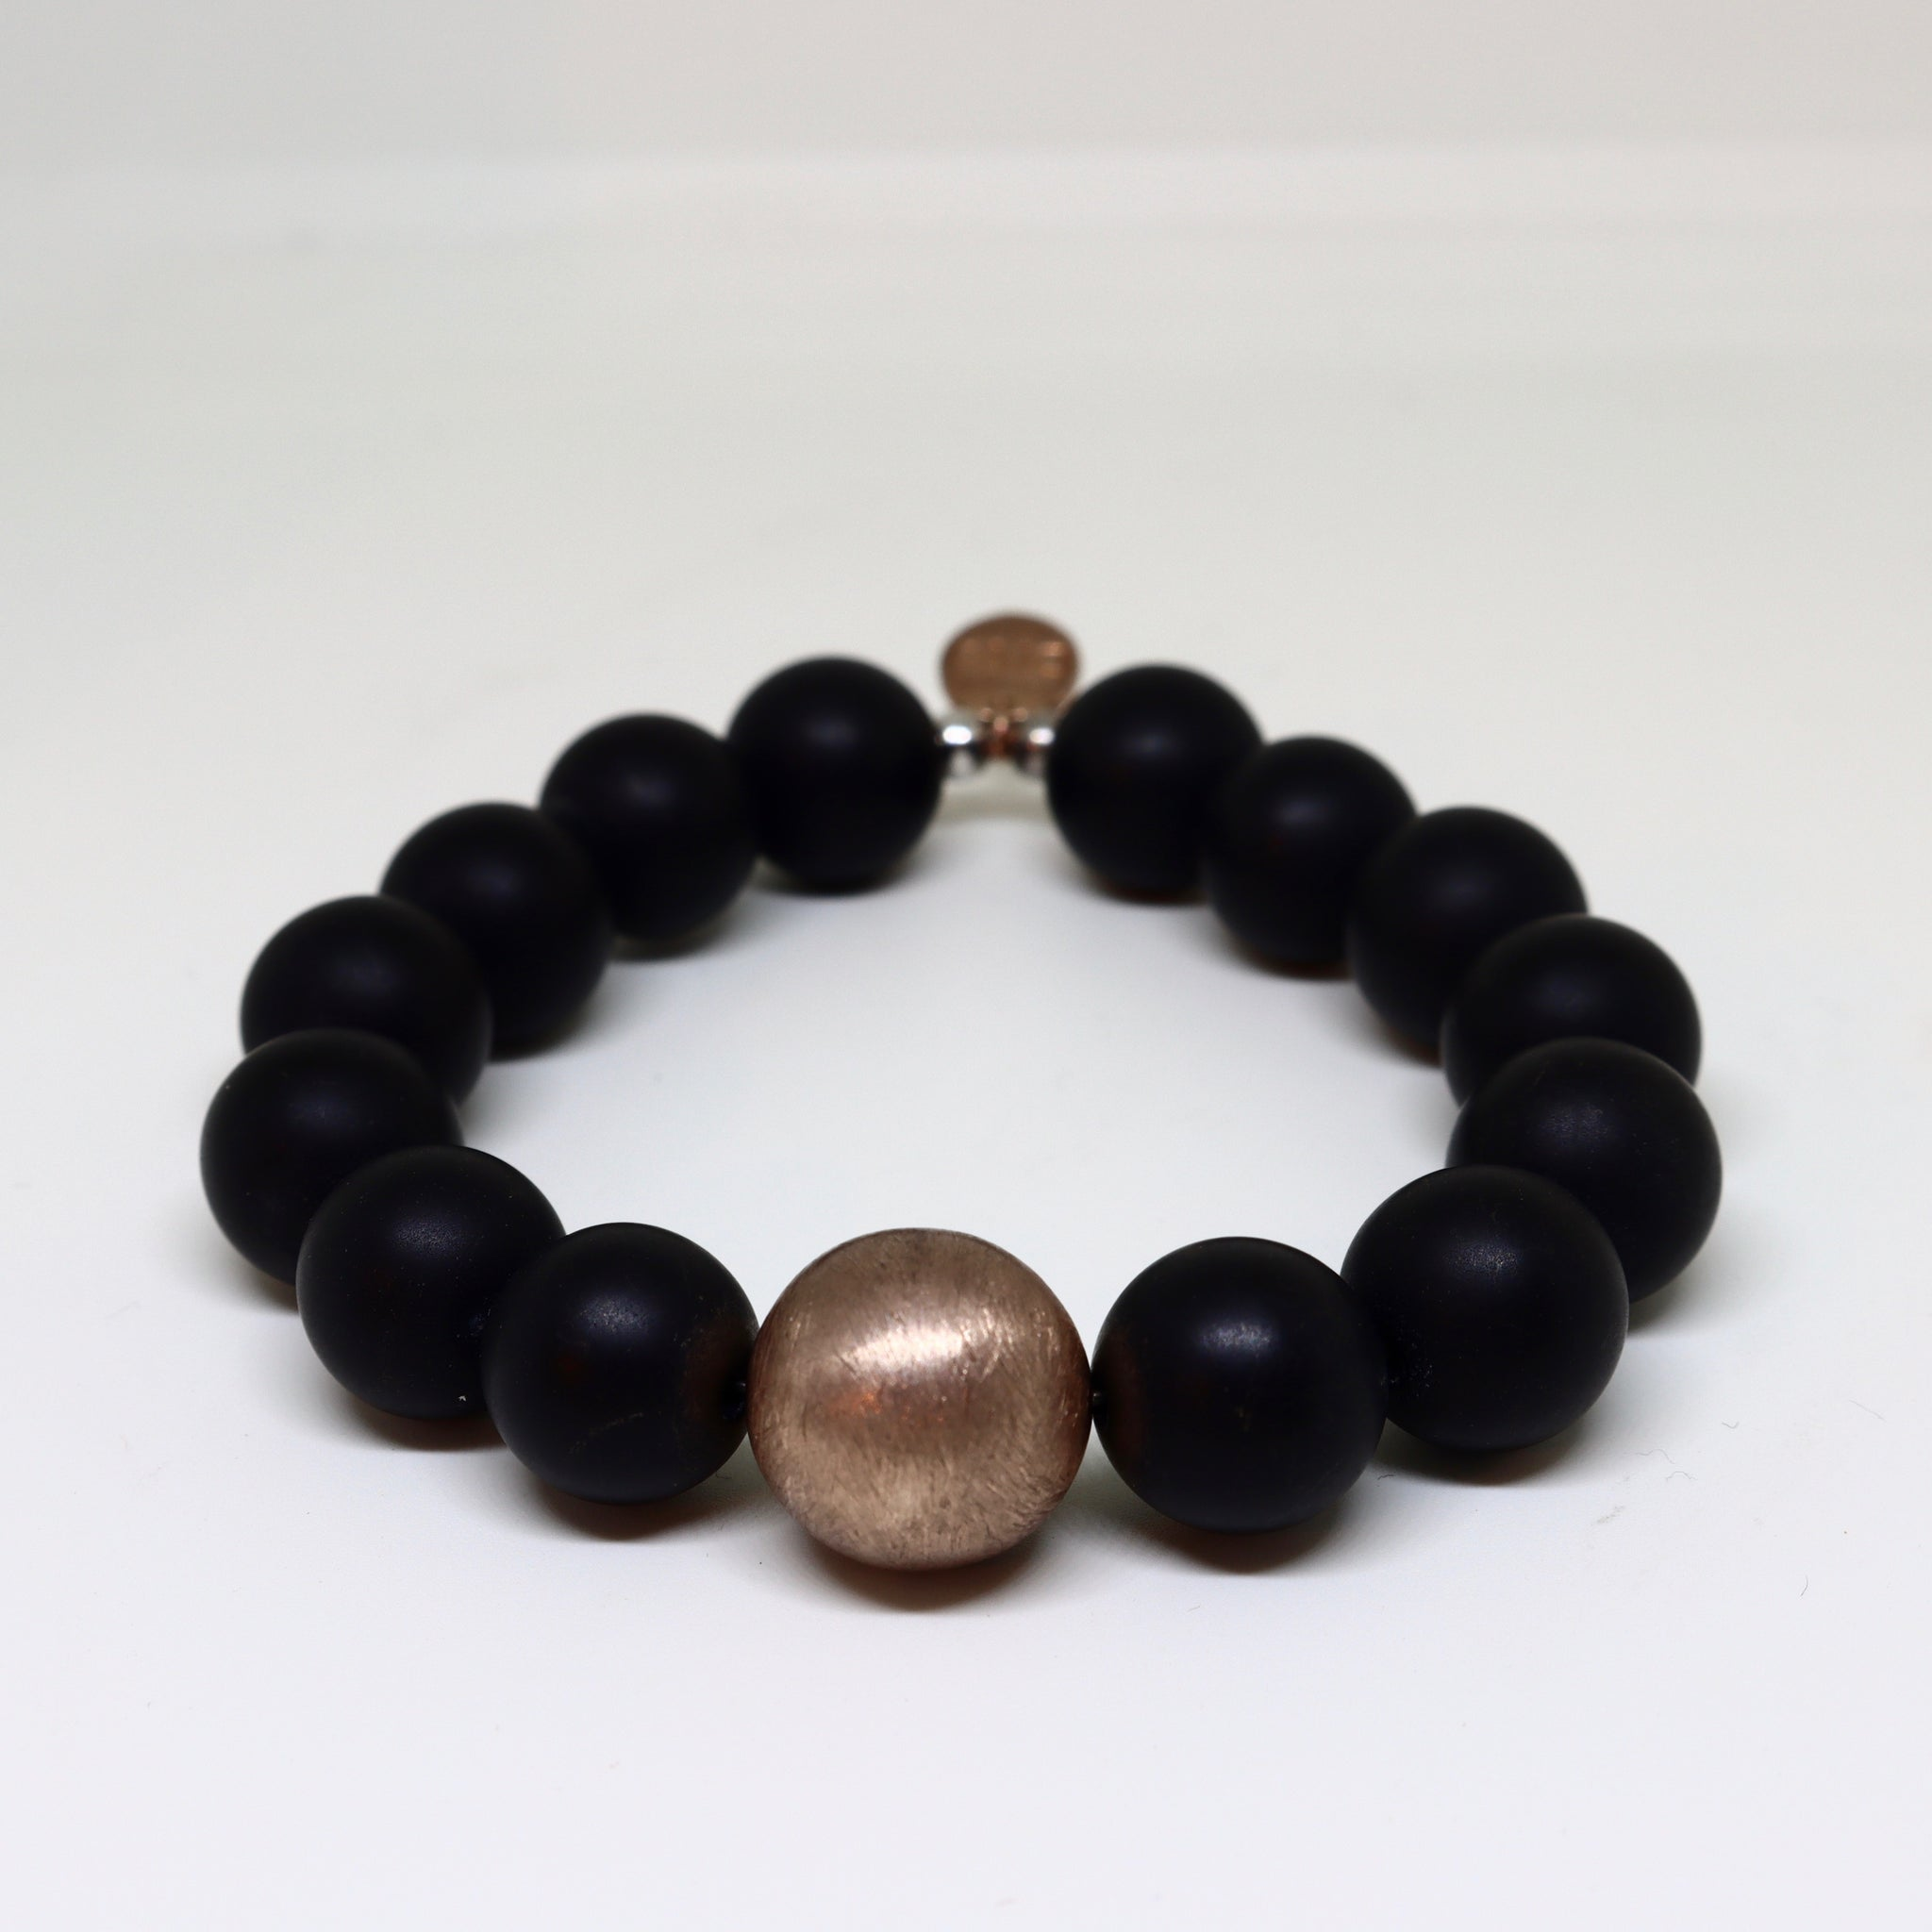 Black Onyx balls with brushed metal center